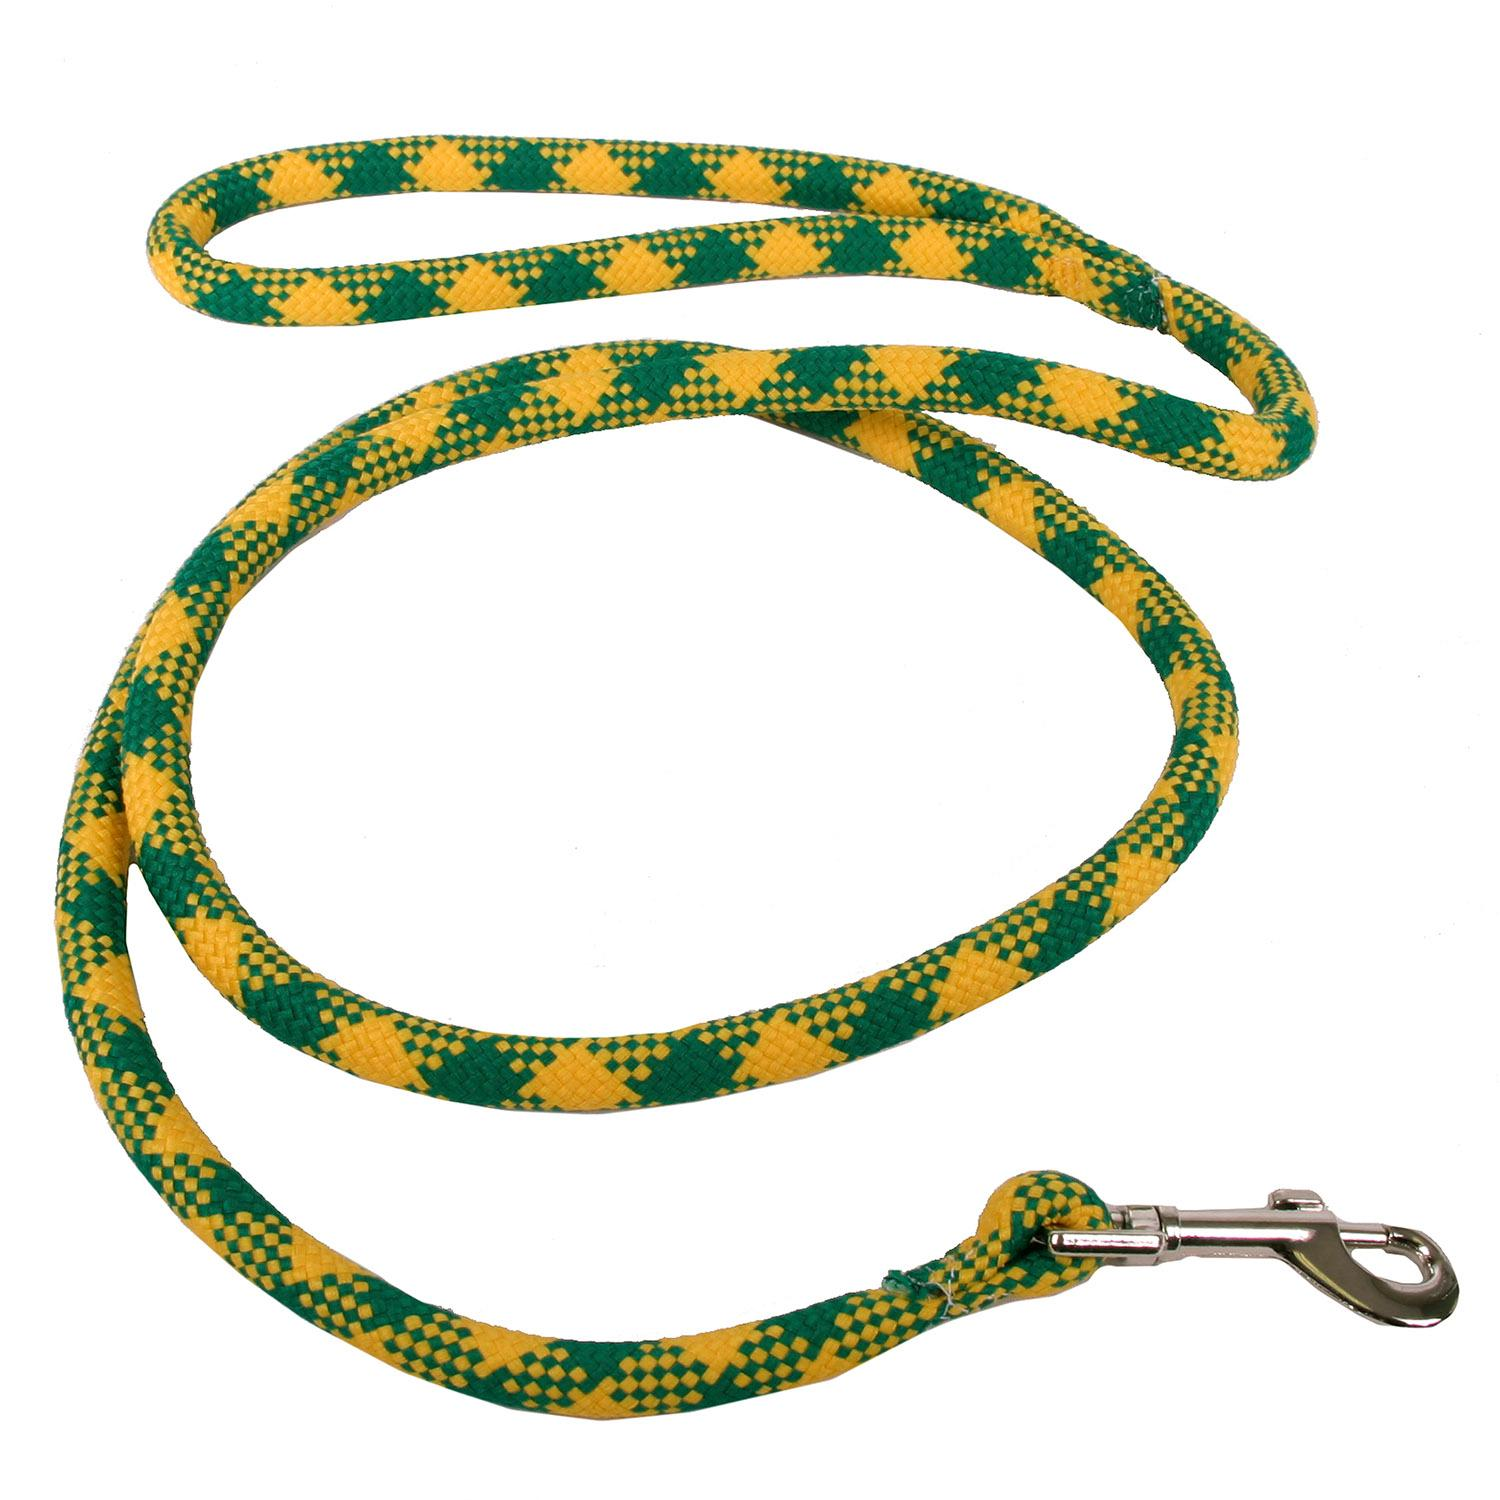 Round Braided Team Colors Dog Leash by Yellow Dog - Gold and Green